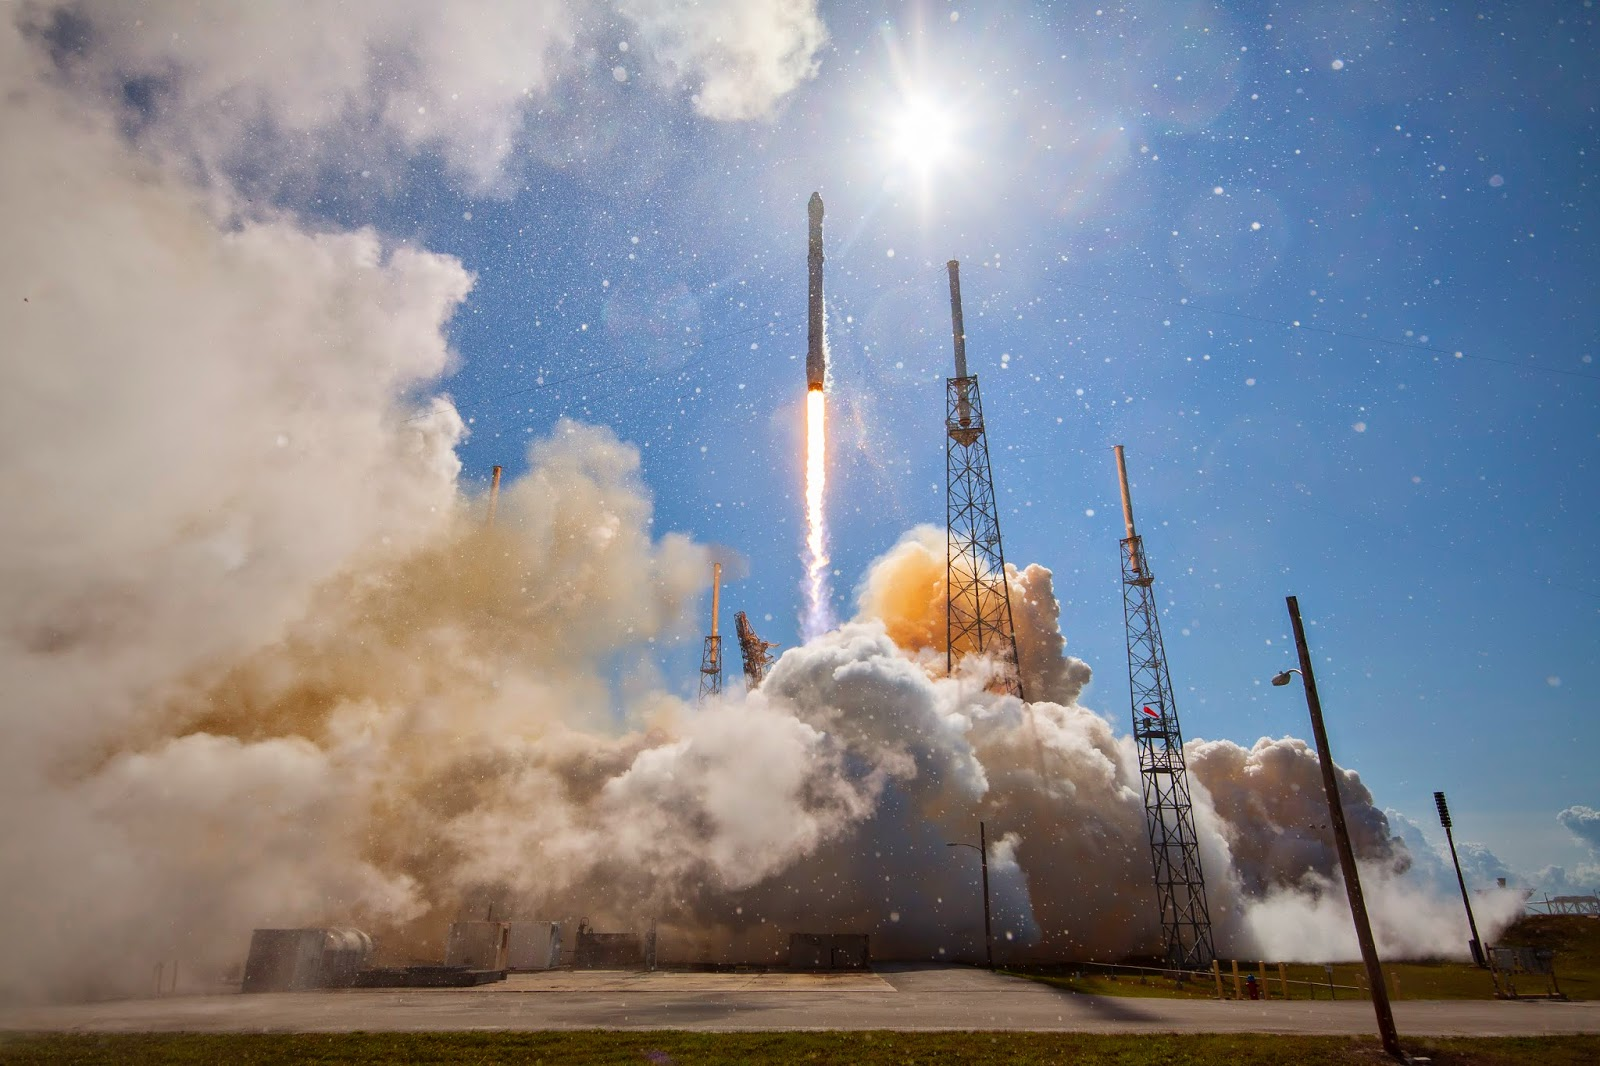 http://www.spacex.com/news/2015/04/14/liftoff-falcon-9-and-dragon-begin-crs-6-mission-resupply-international-space-station